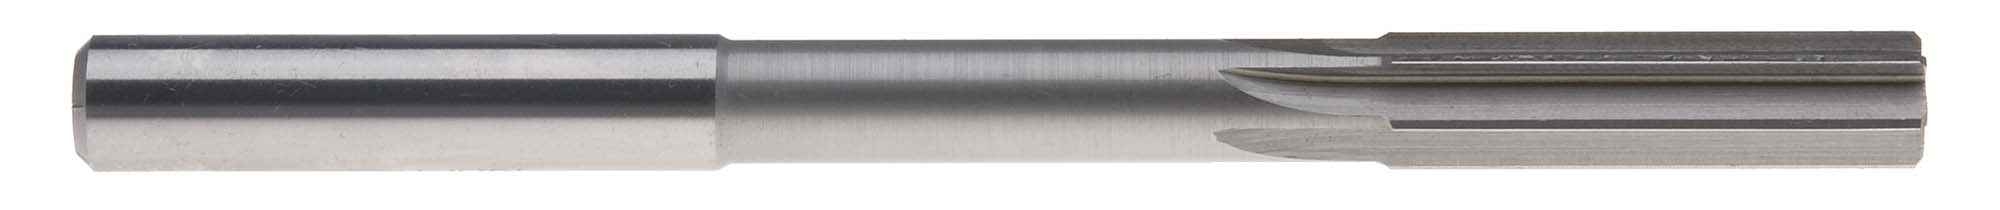 20mm Metric Chucking Reamer, High Speed Steel